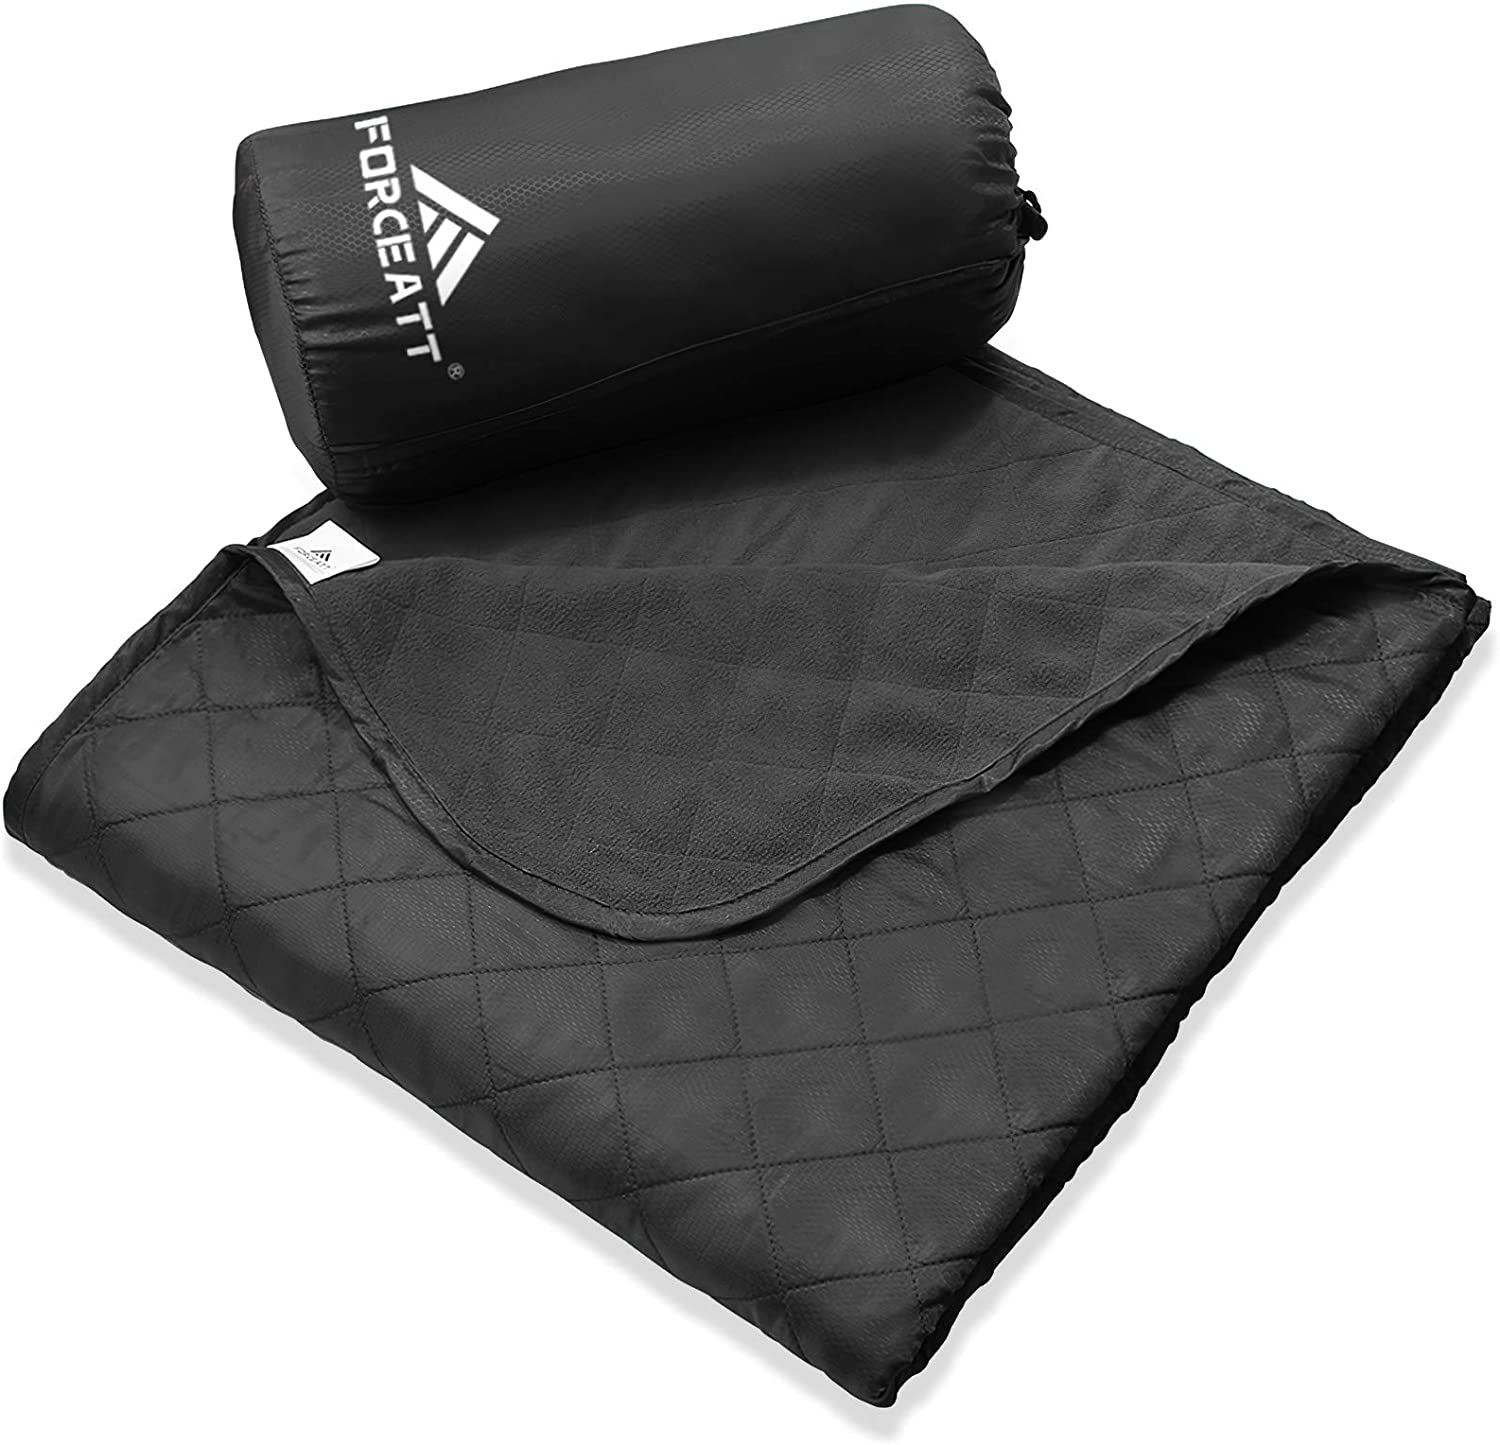 Forceatt Camping Blanket, Picnic Blanket for Outdoors Wearing, Warm, Light, Thick, Machine Washable, 140cm 200cm, Suitable for Camping, Outdoor, Picnic, Festival, Travel : Clothing